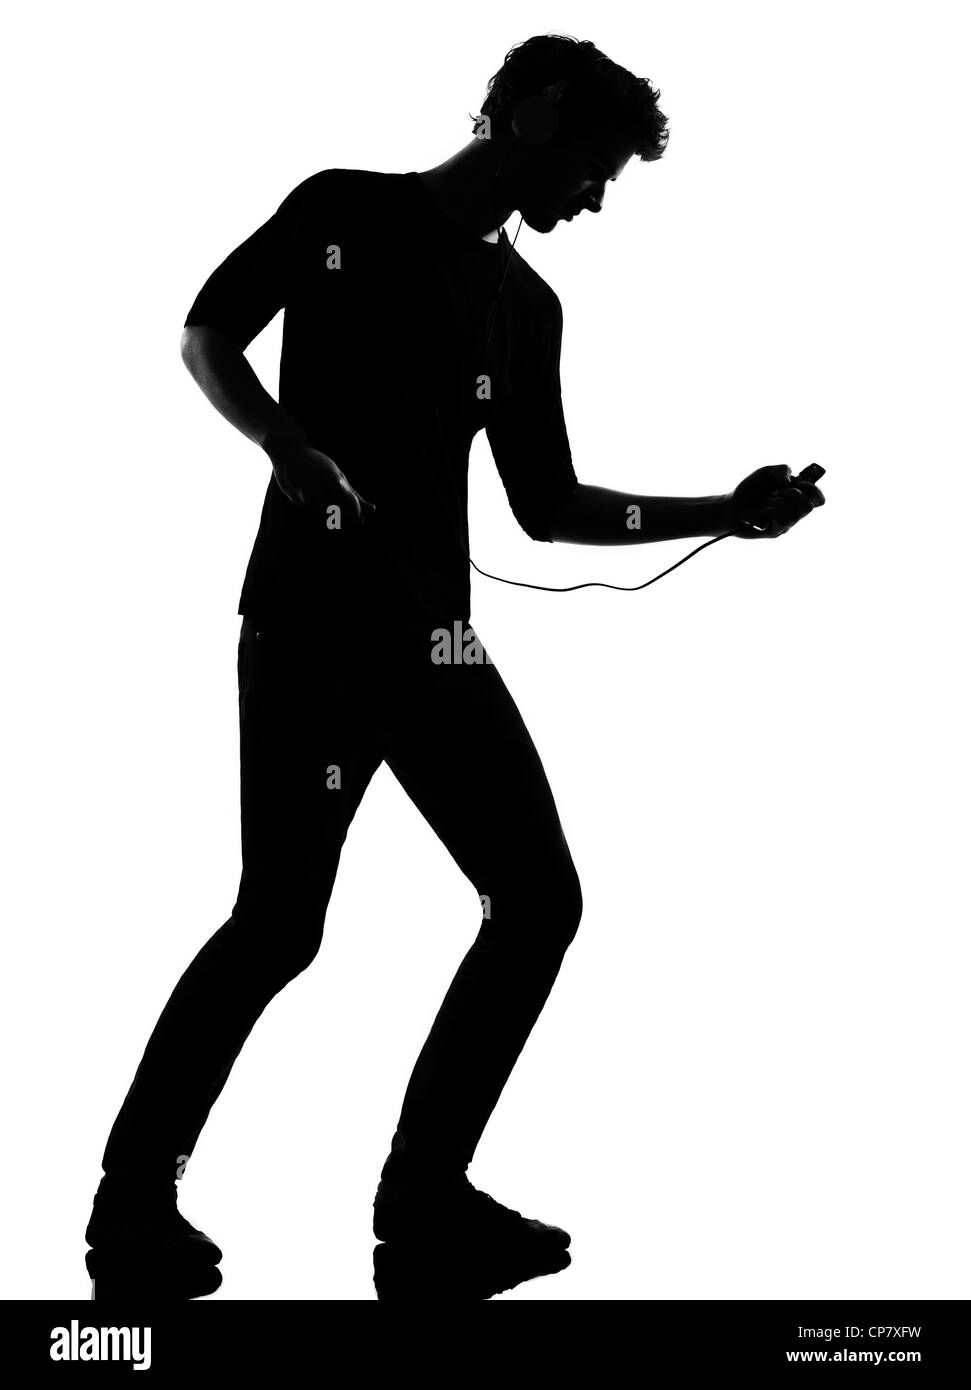 young man listening music audio player silhouette in studio isolated on white background - Stock Image